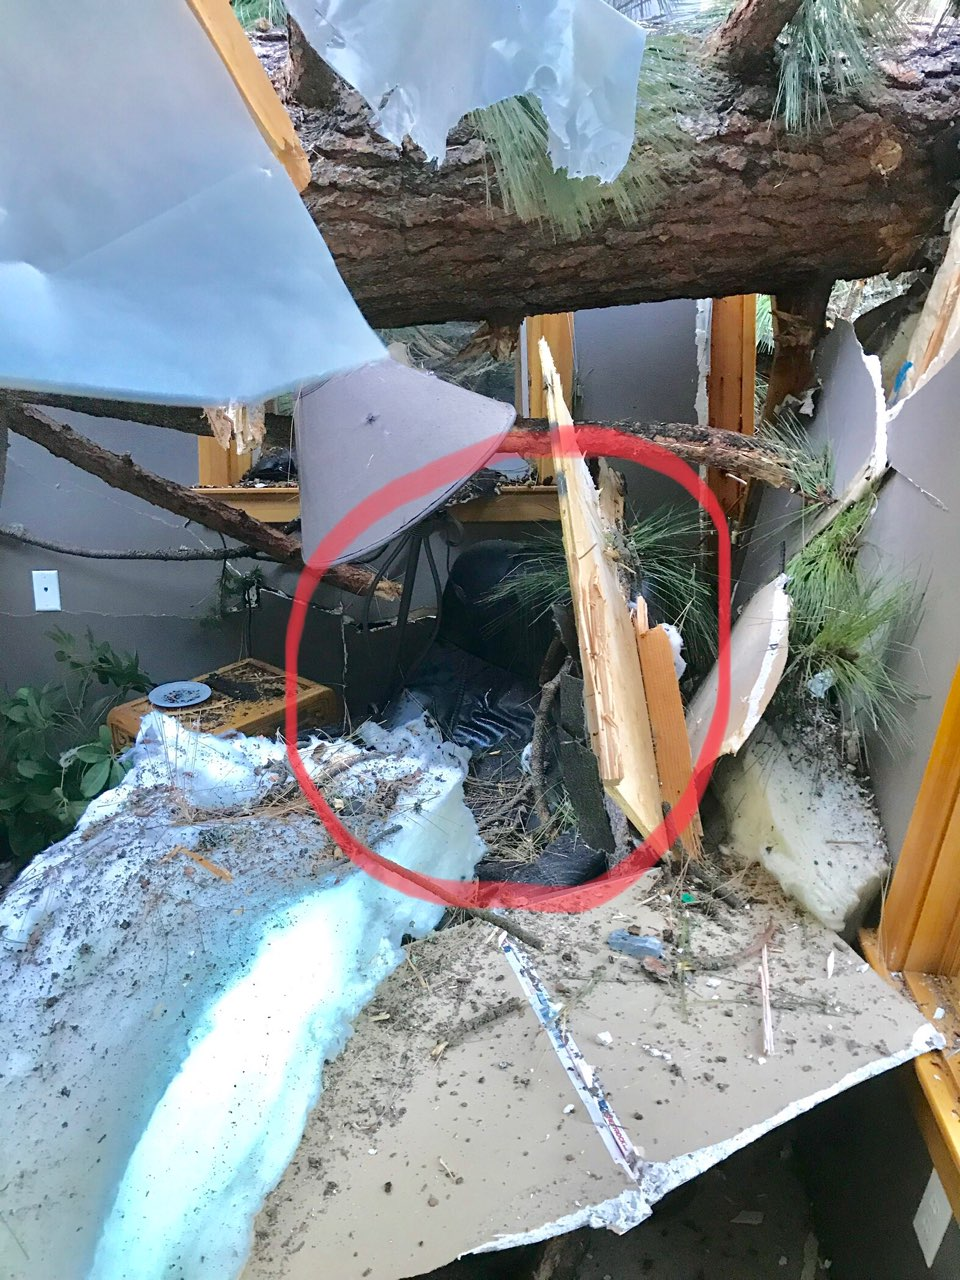 Battalion Chief Kelly Burns circled the arm chair in the photo that resident Brian Gorham said he was on his way to sit in when the tree fell directly on top of it. Photo courtesy of Kelly Burns